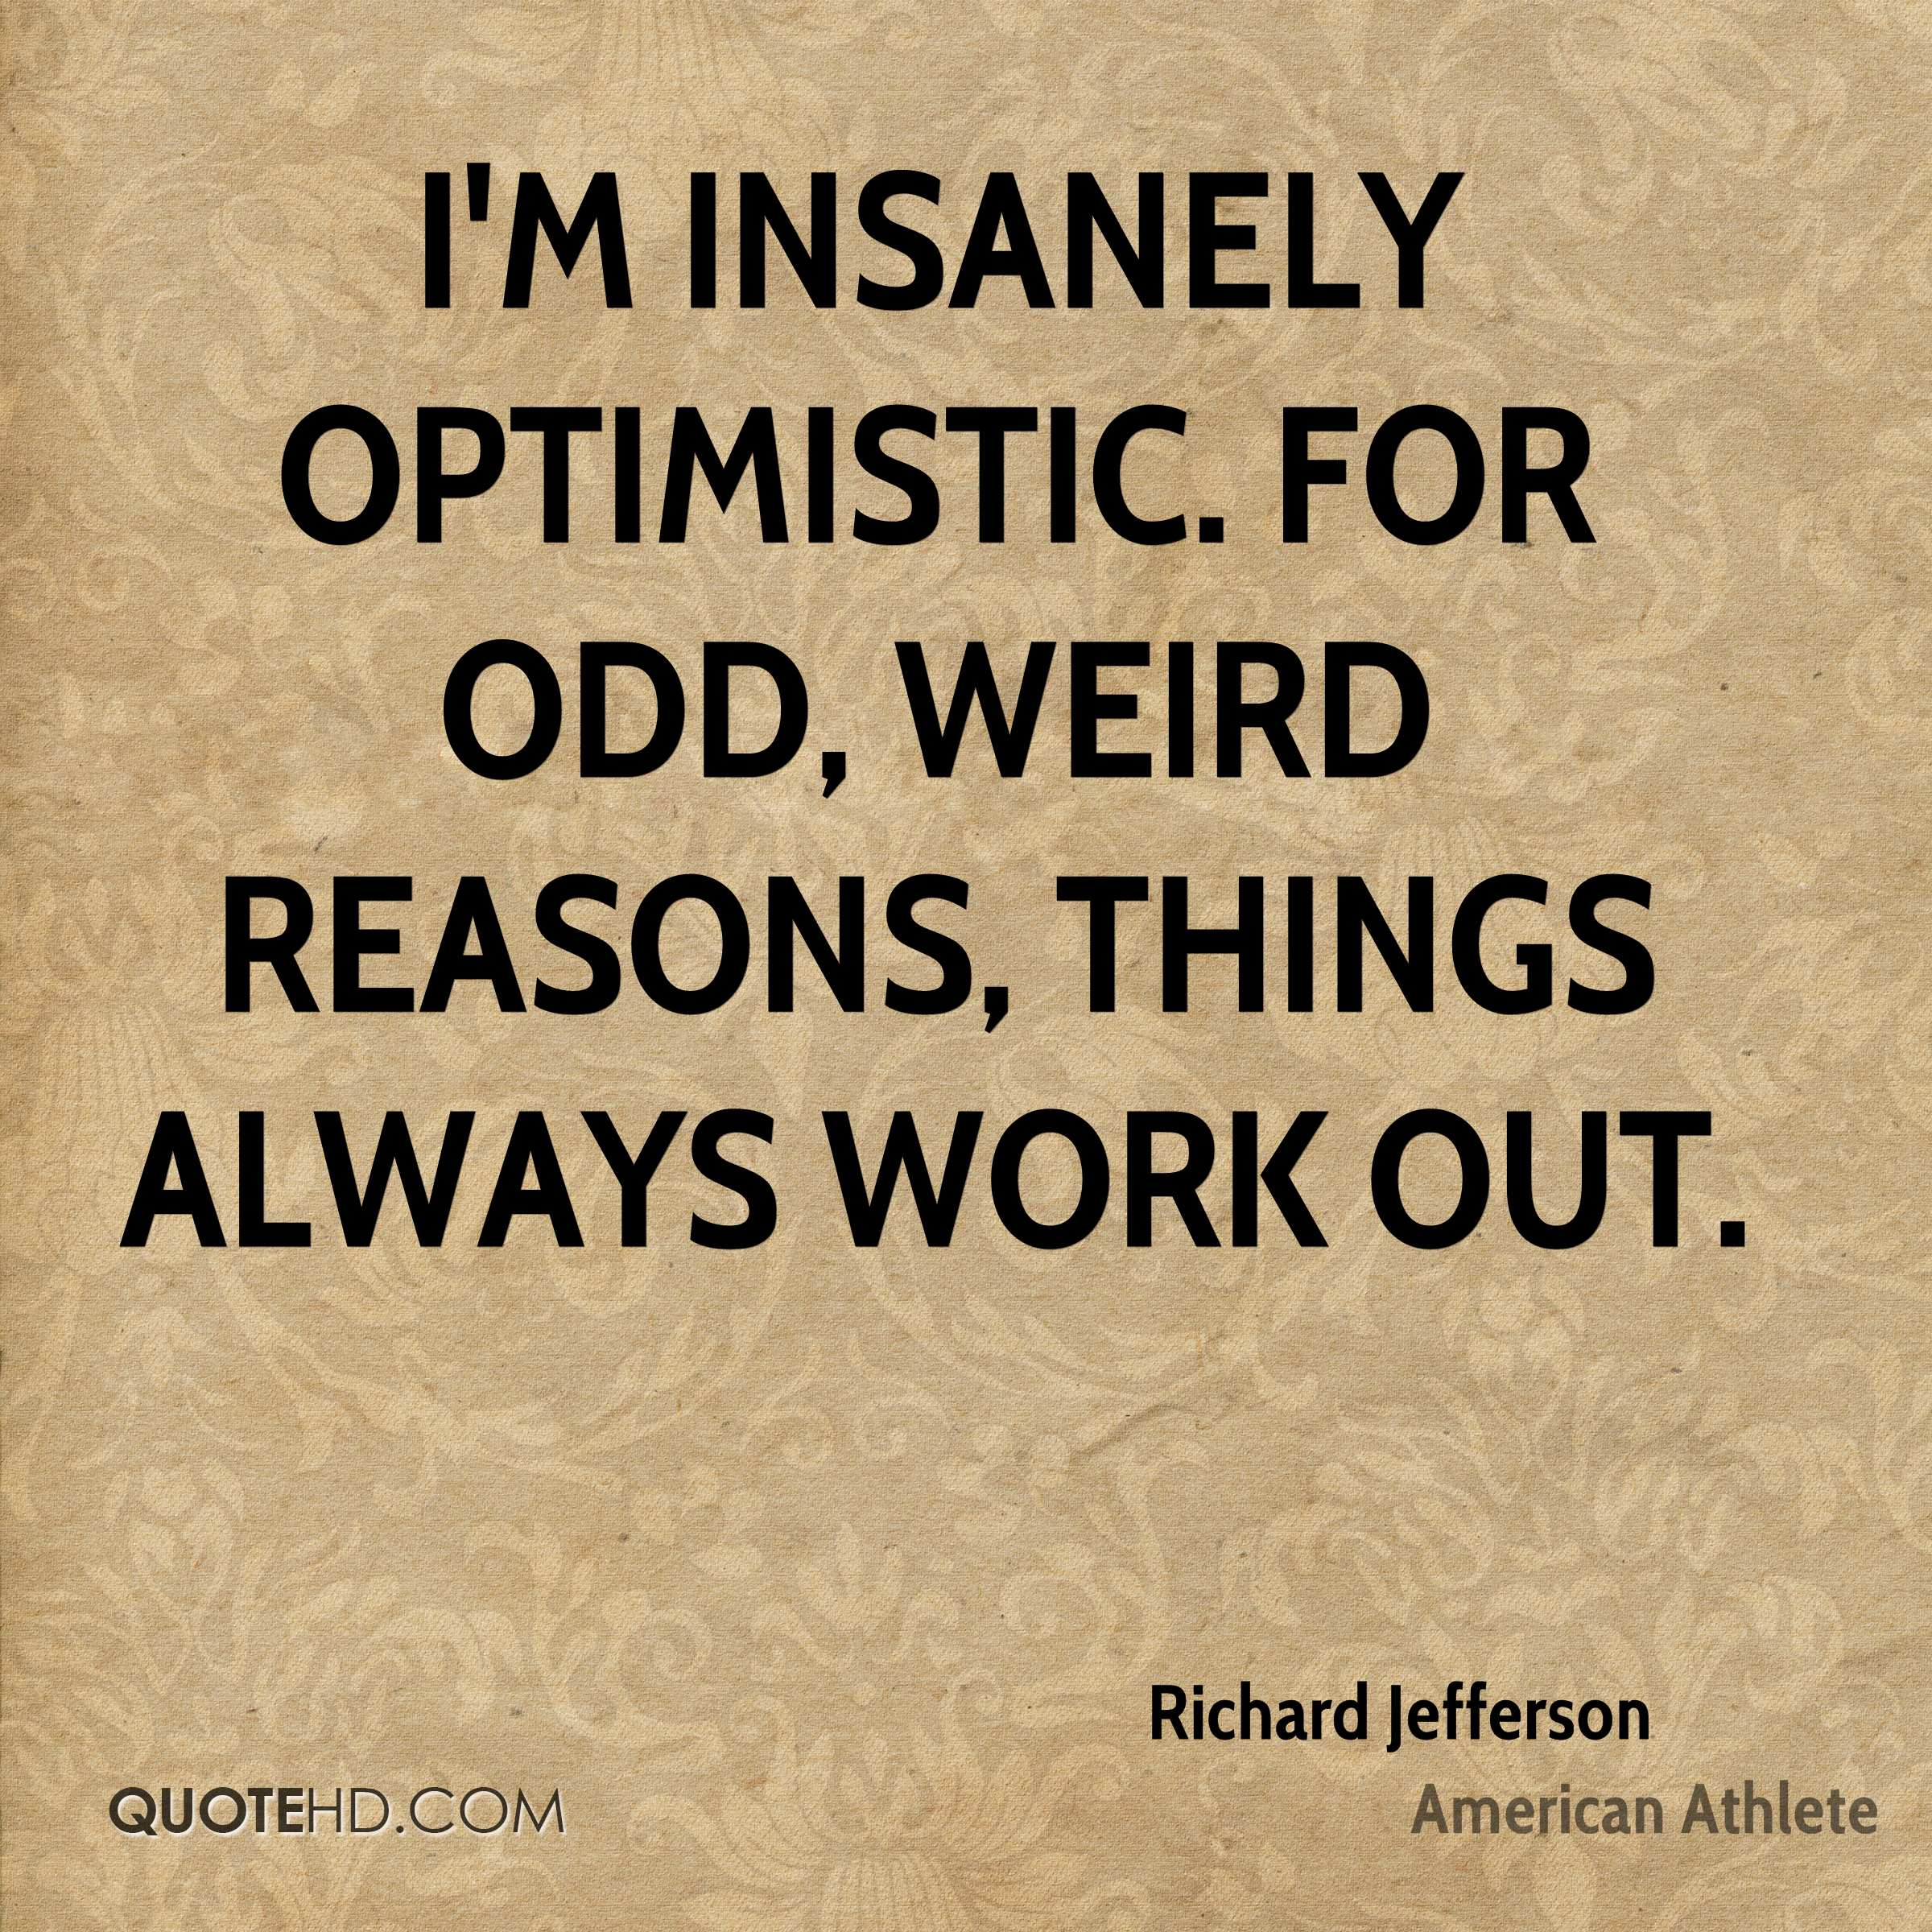 I'm insanely optimistic. For odd, weird reasons, things always work out.